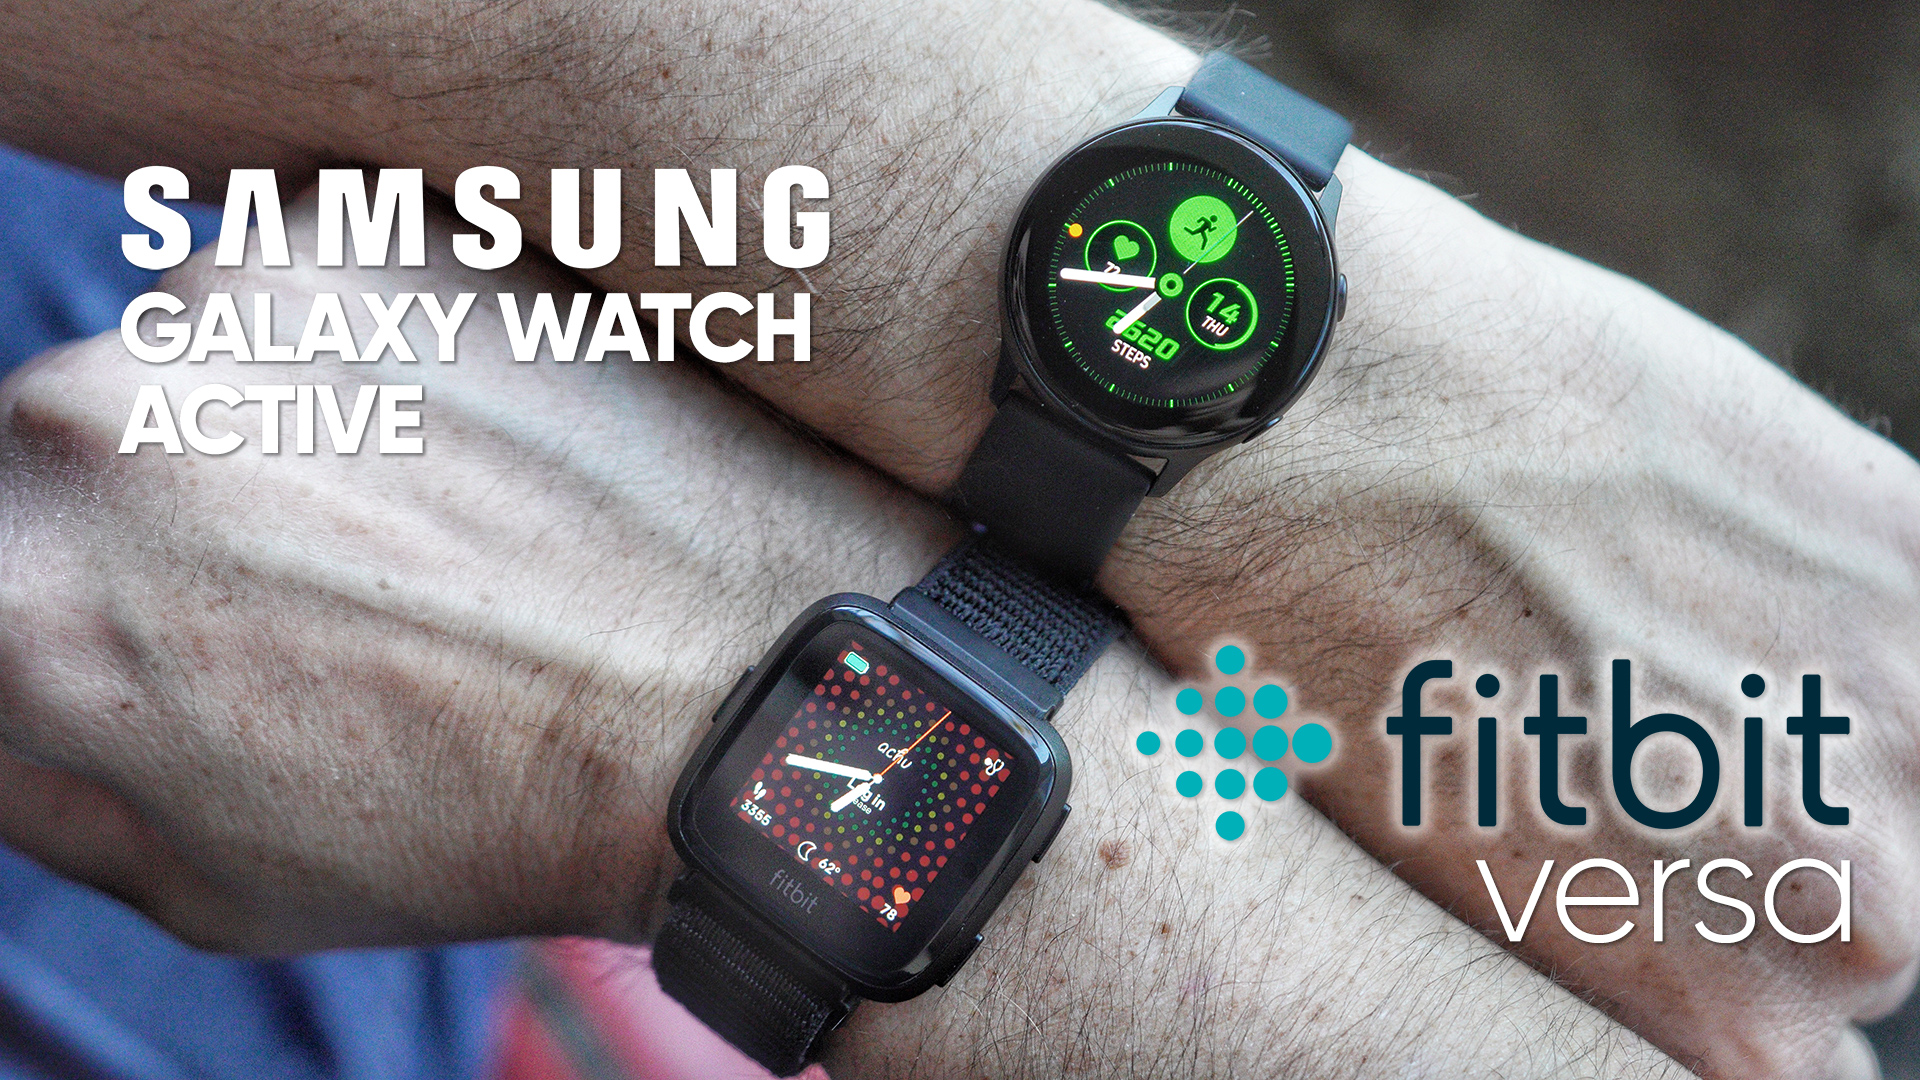 Samsung Galaxy Watch Active vs Fitbit Versa - StateOfTechStateOfTech